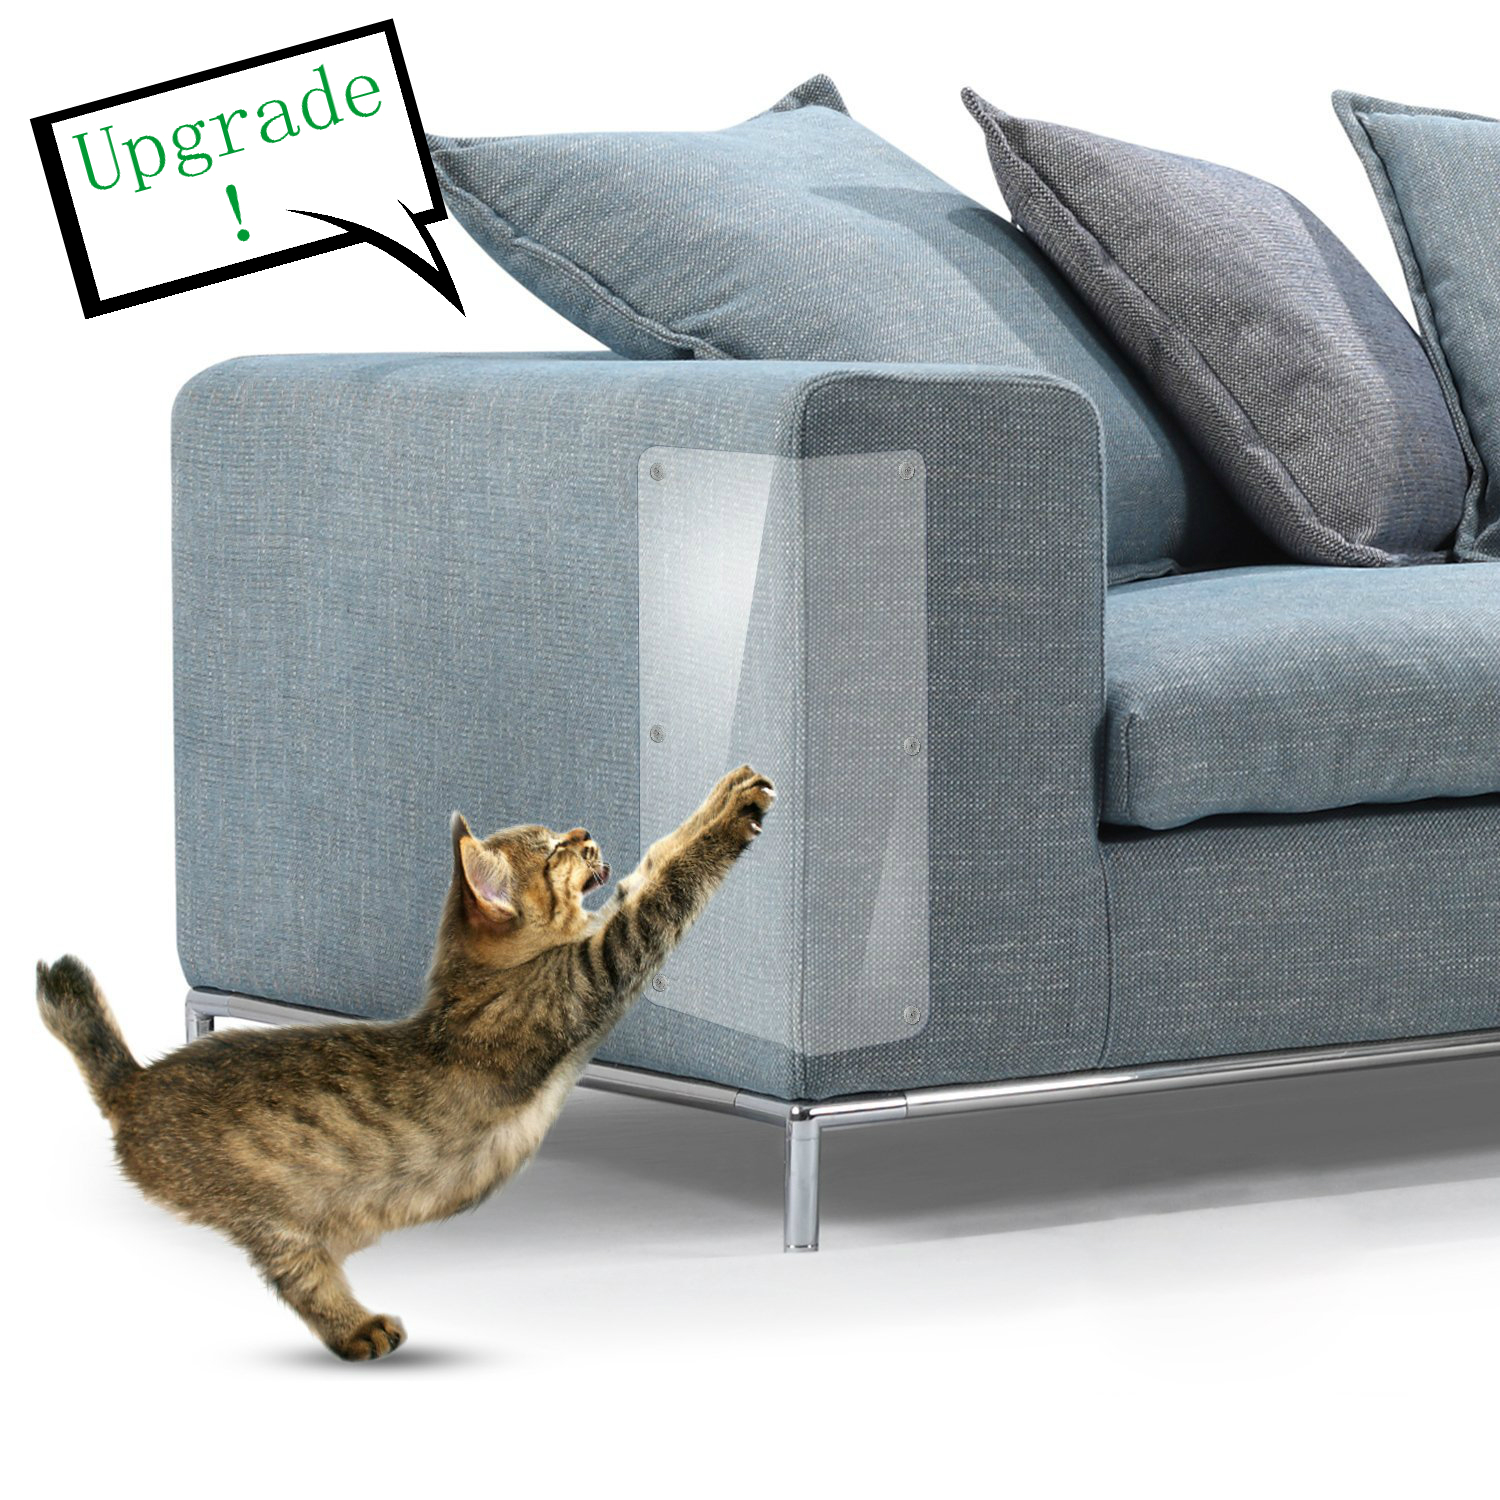 Kitten Scratching Guard Sofa Anti-grab Film Anti-scratch Sticker Set Upgrade Thicker Stronger Better Quality Cat Scratcher